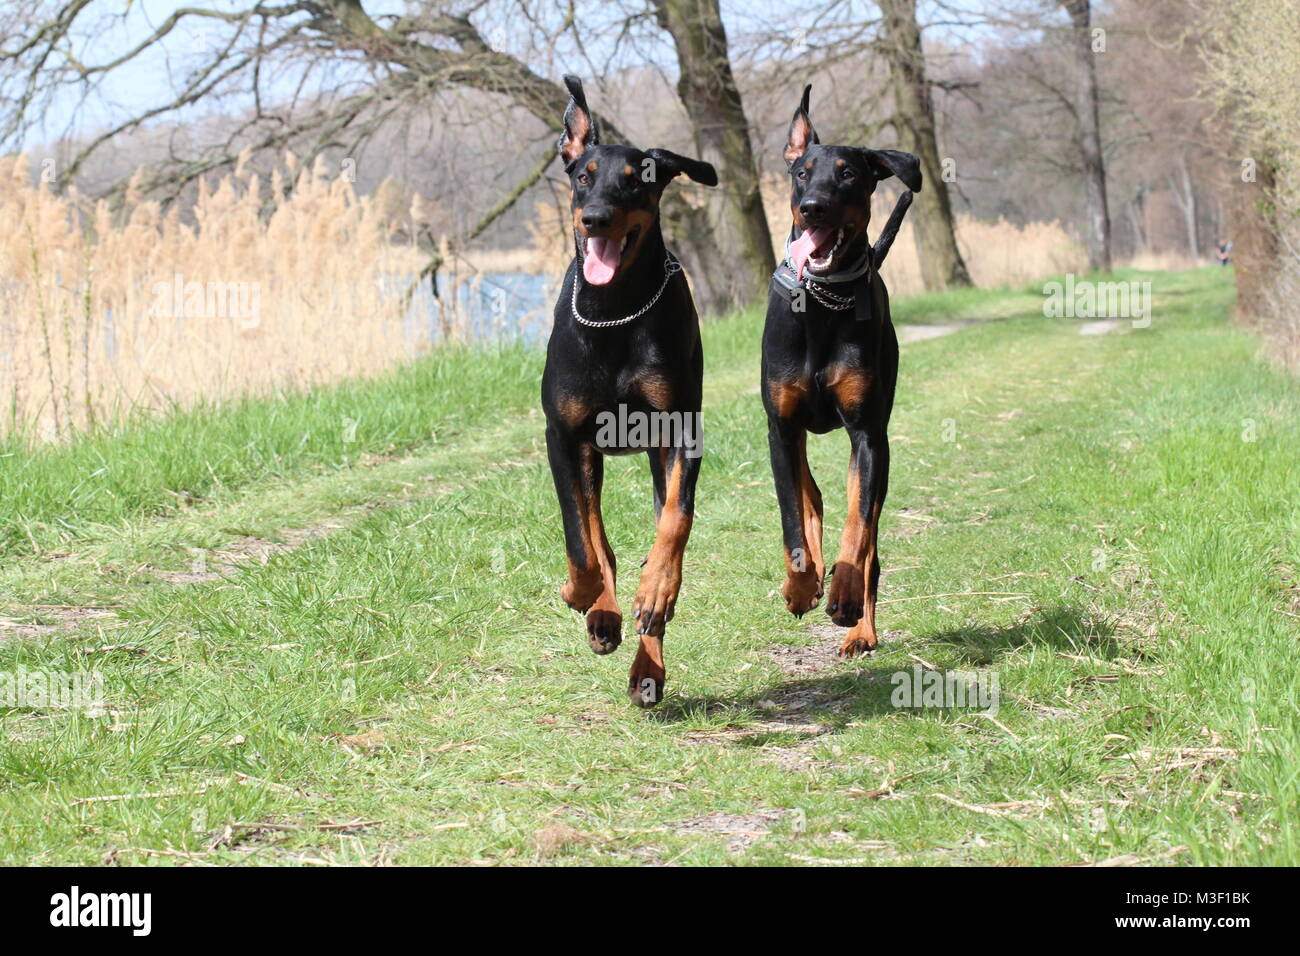 Two dogs dobermans running - Stock Image